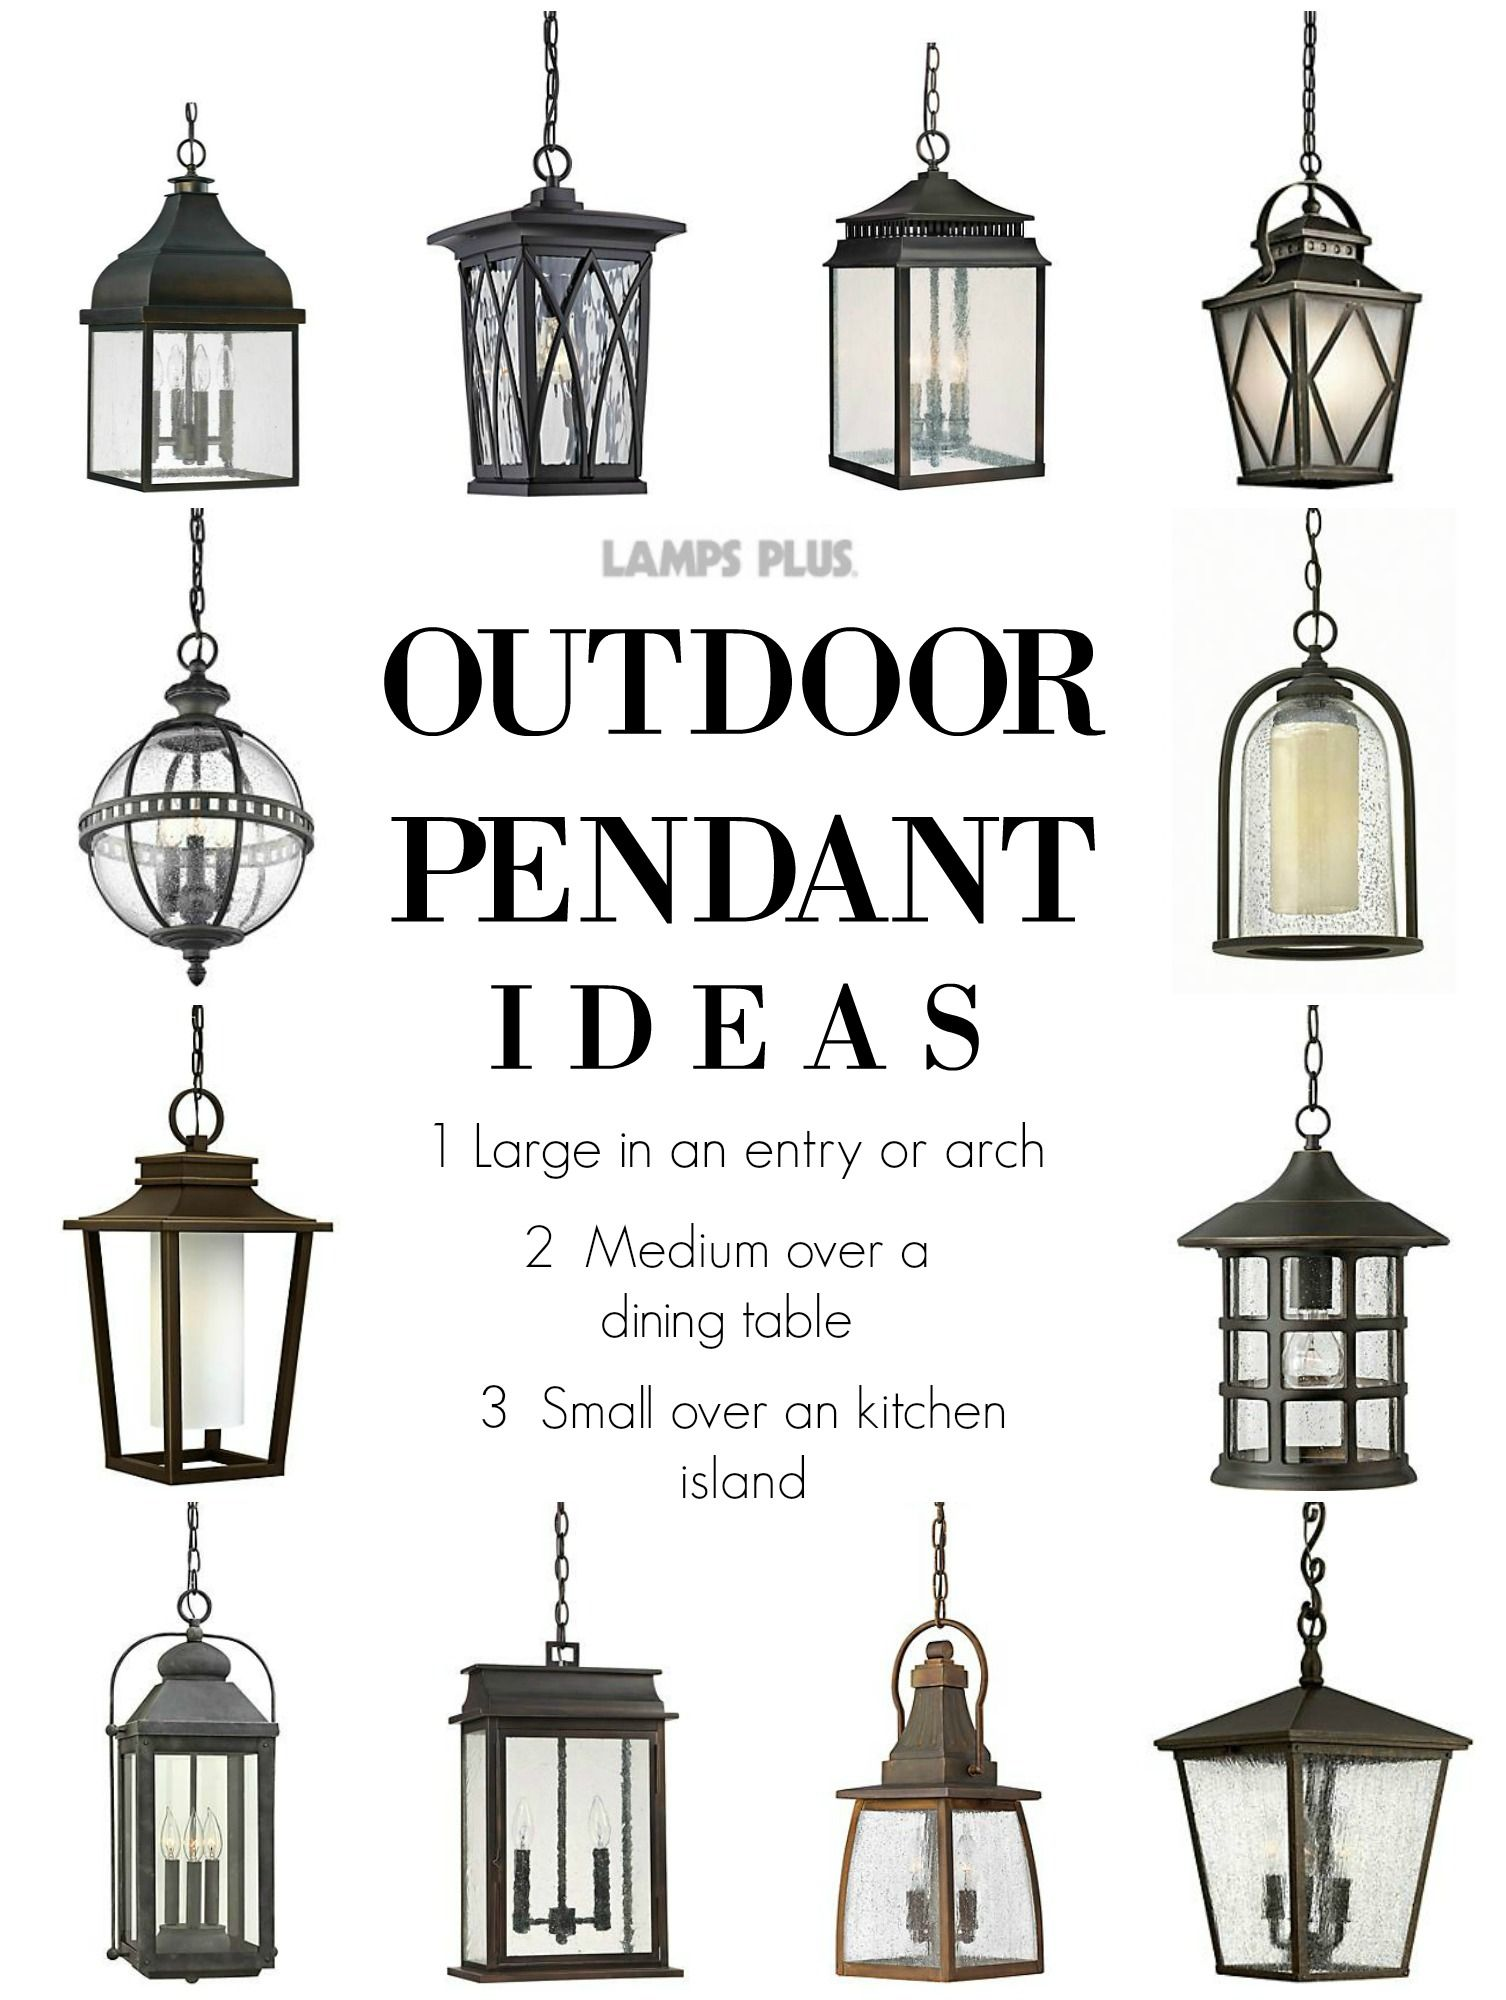 Outdoor Lighting Outdoor Pendant Ideas From Lampsplus Outdoorliving Outdoorlighting Outdoor Pendant Lighting Front Porch Lighting Outdoor Light Fixtures